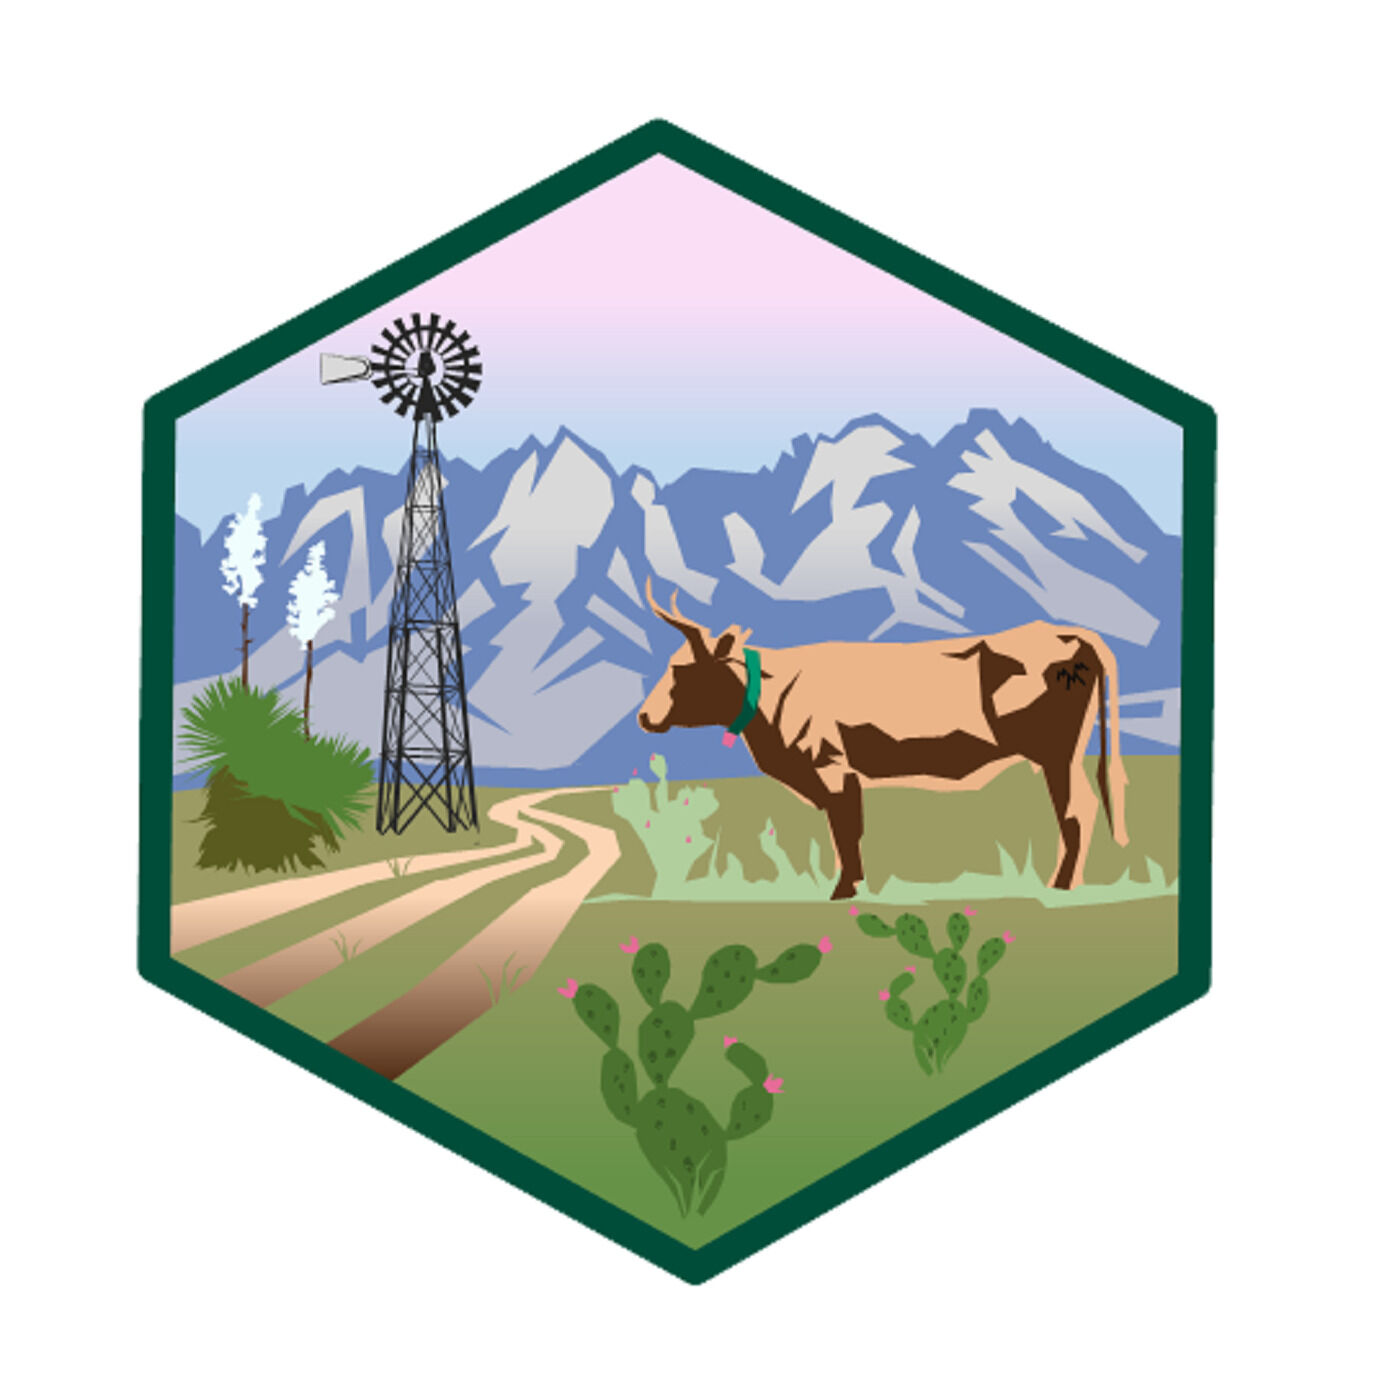 The Sustainable Southwest Beef Project